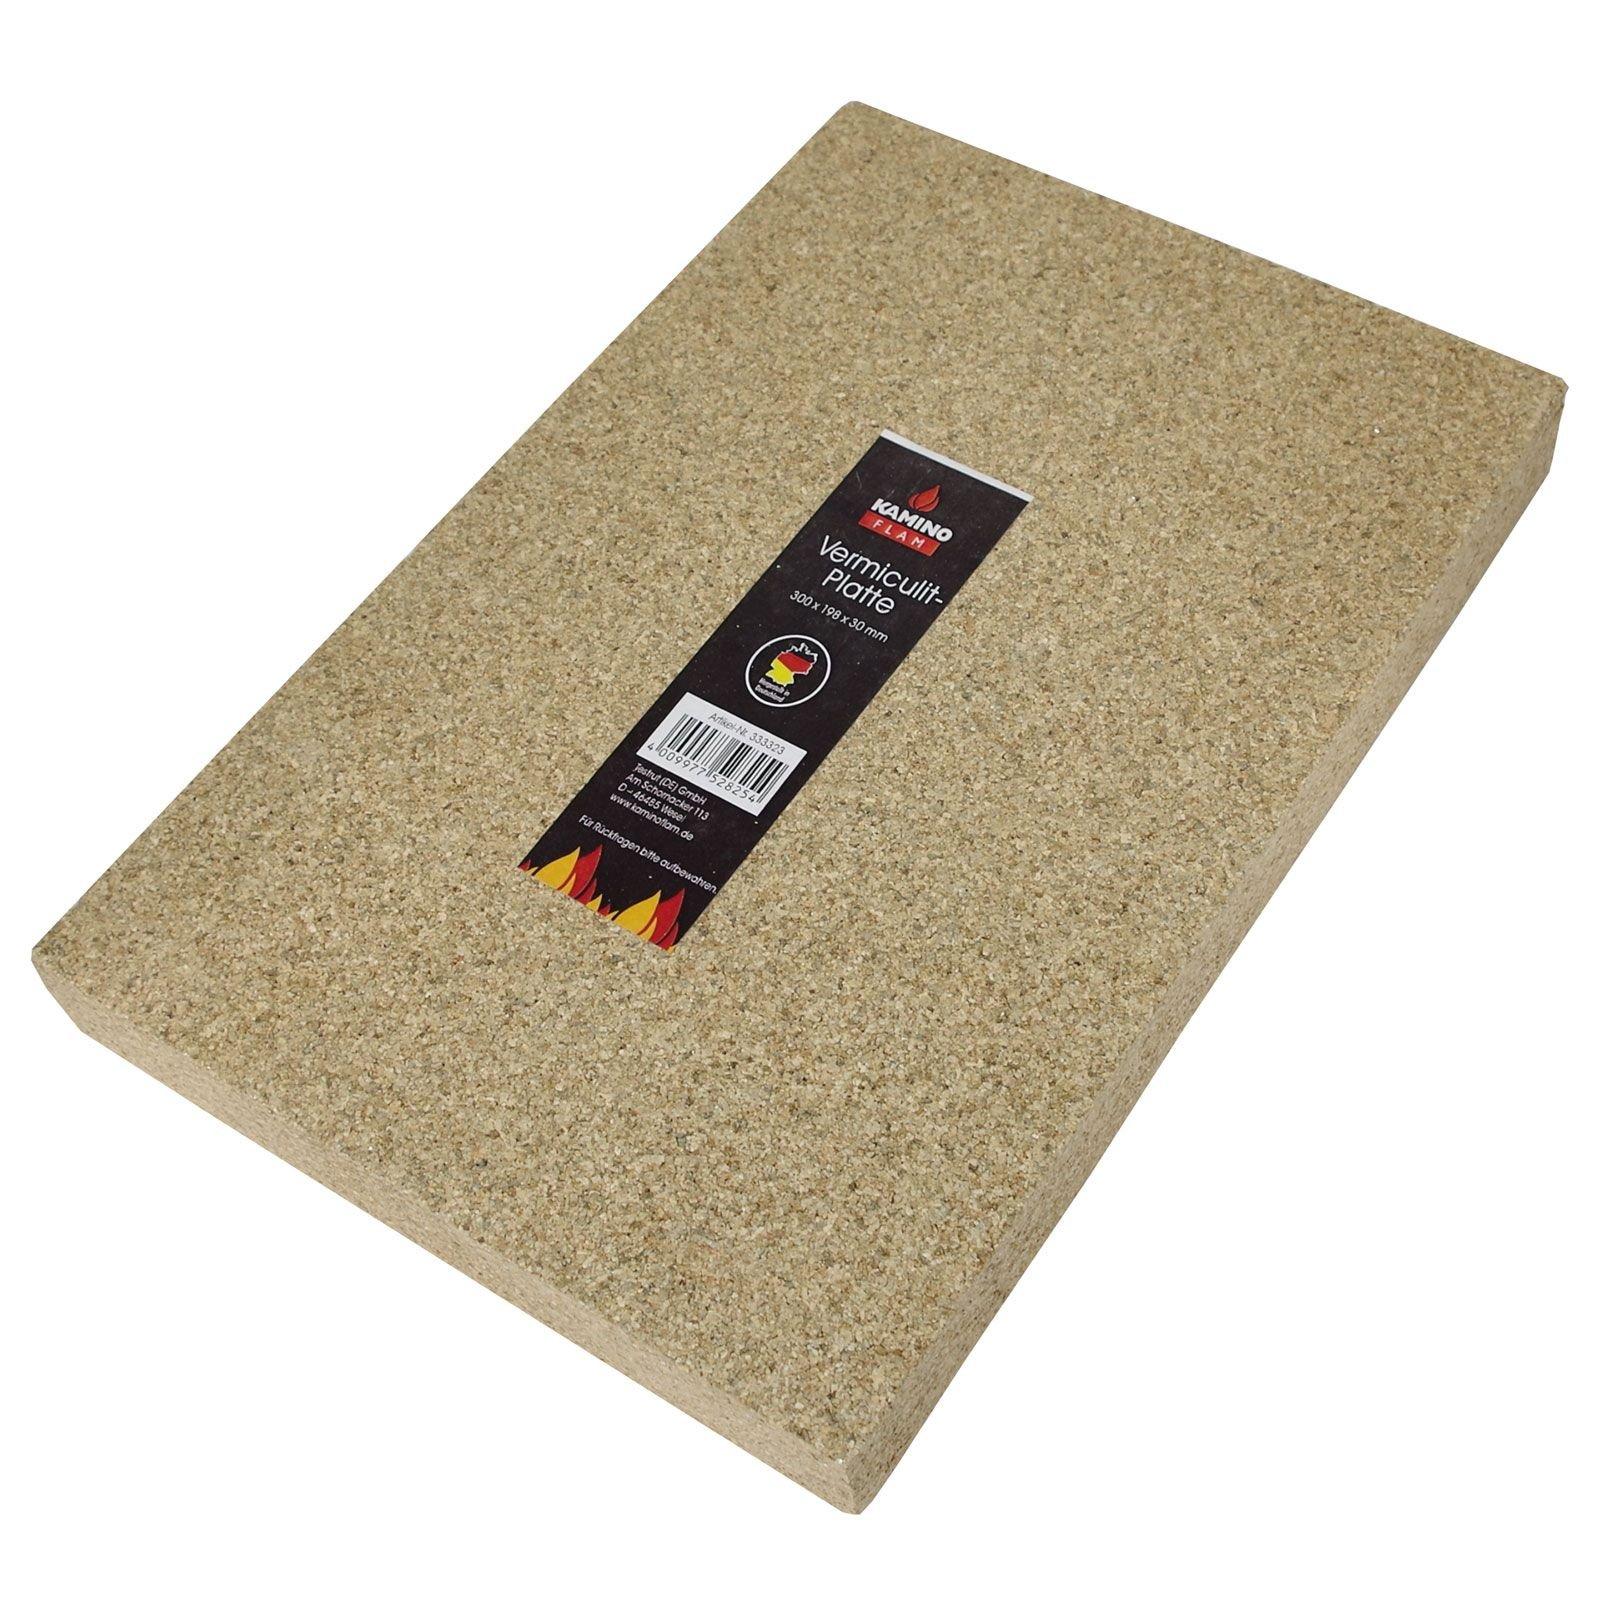 Kamino-Flam Vermiculite Fire Board, No Harmful Substances and Heavy Metals, Temperature-resistant up to 1,100°C, approx. 30x20x3cm